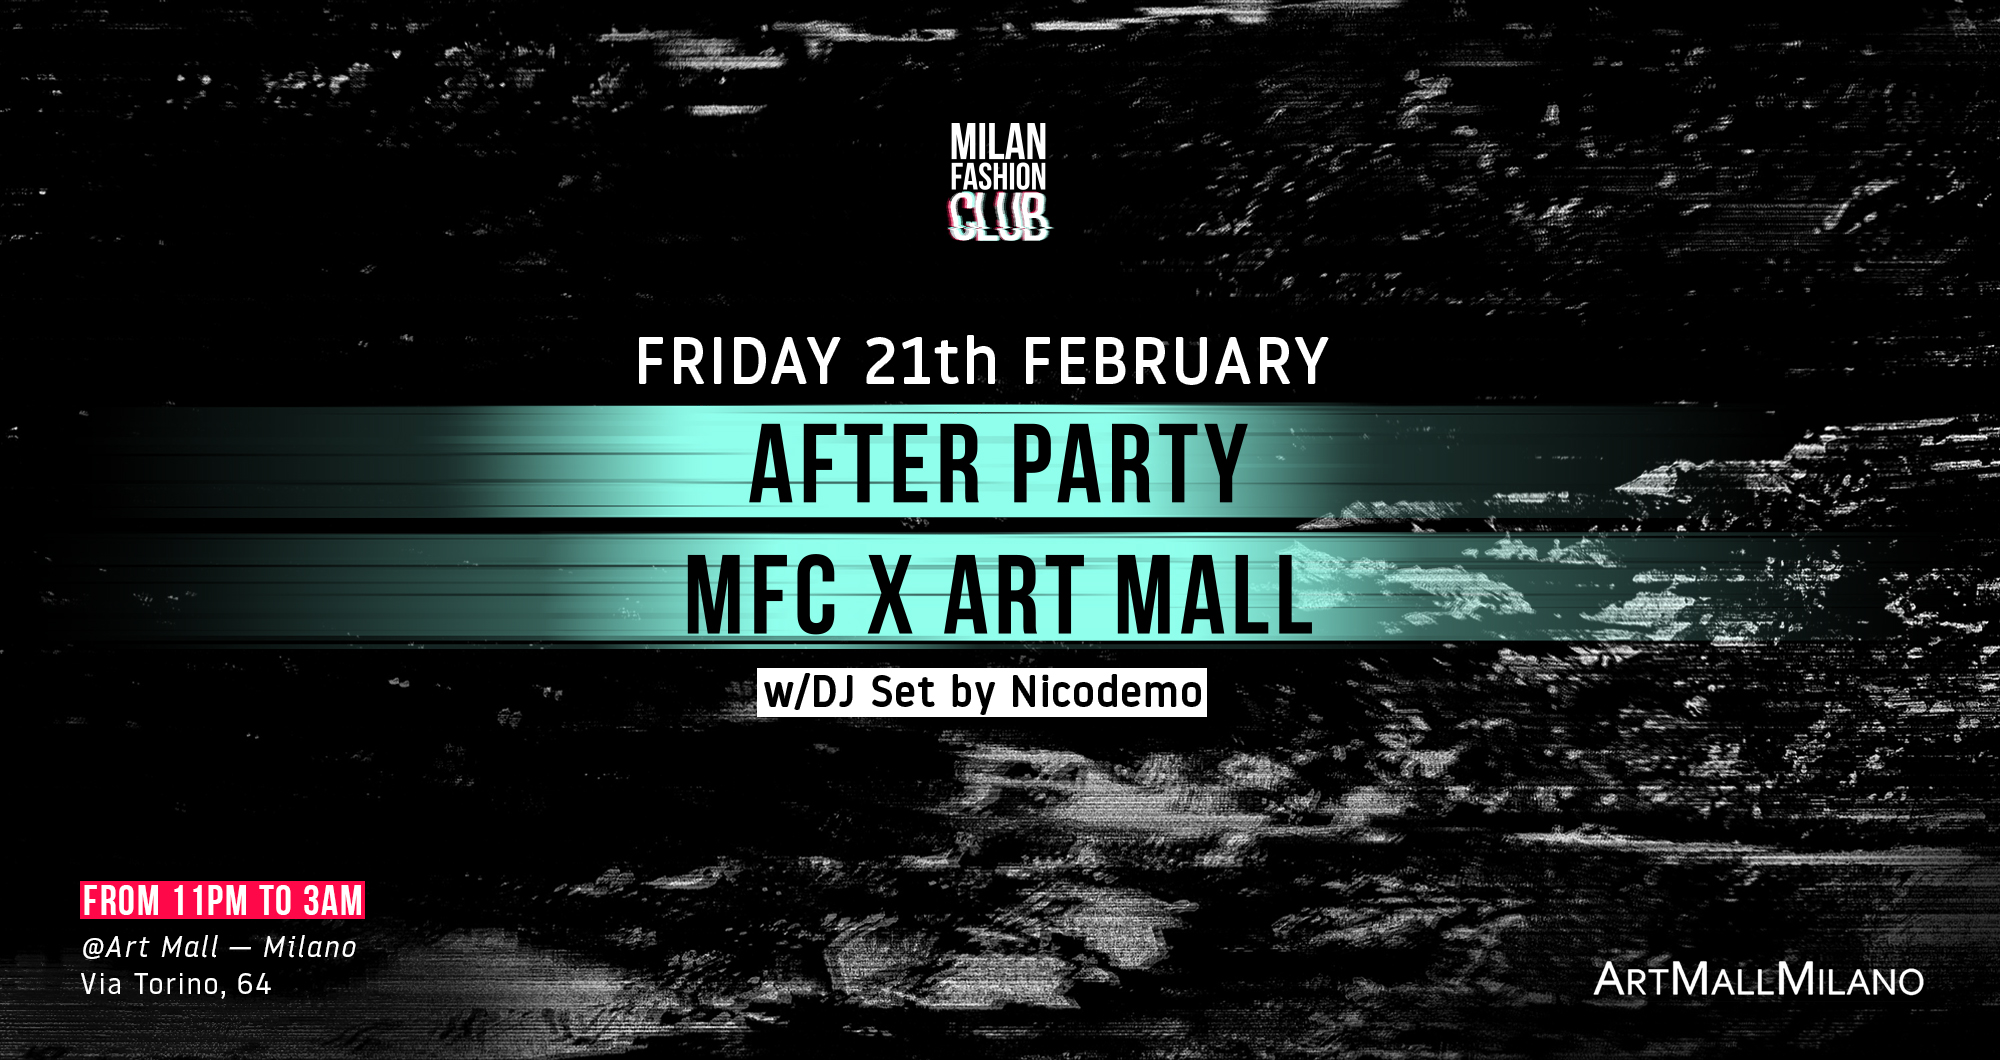 21.02 | After Party MFC x Art Mall